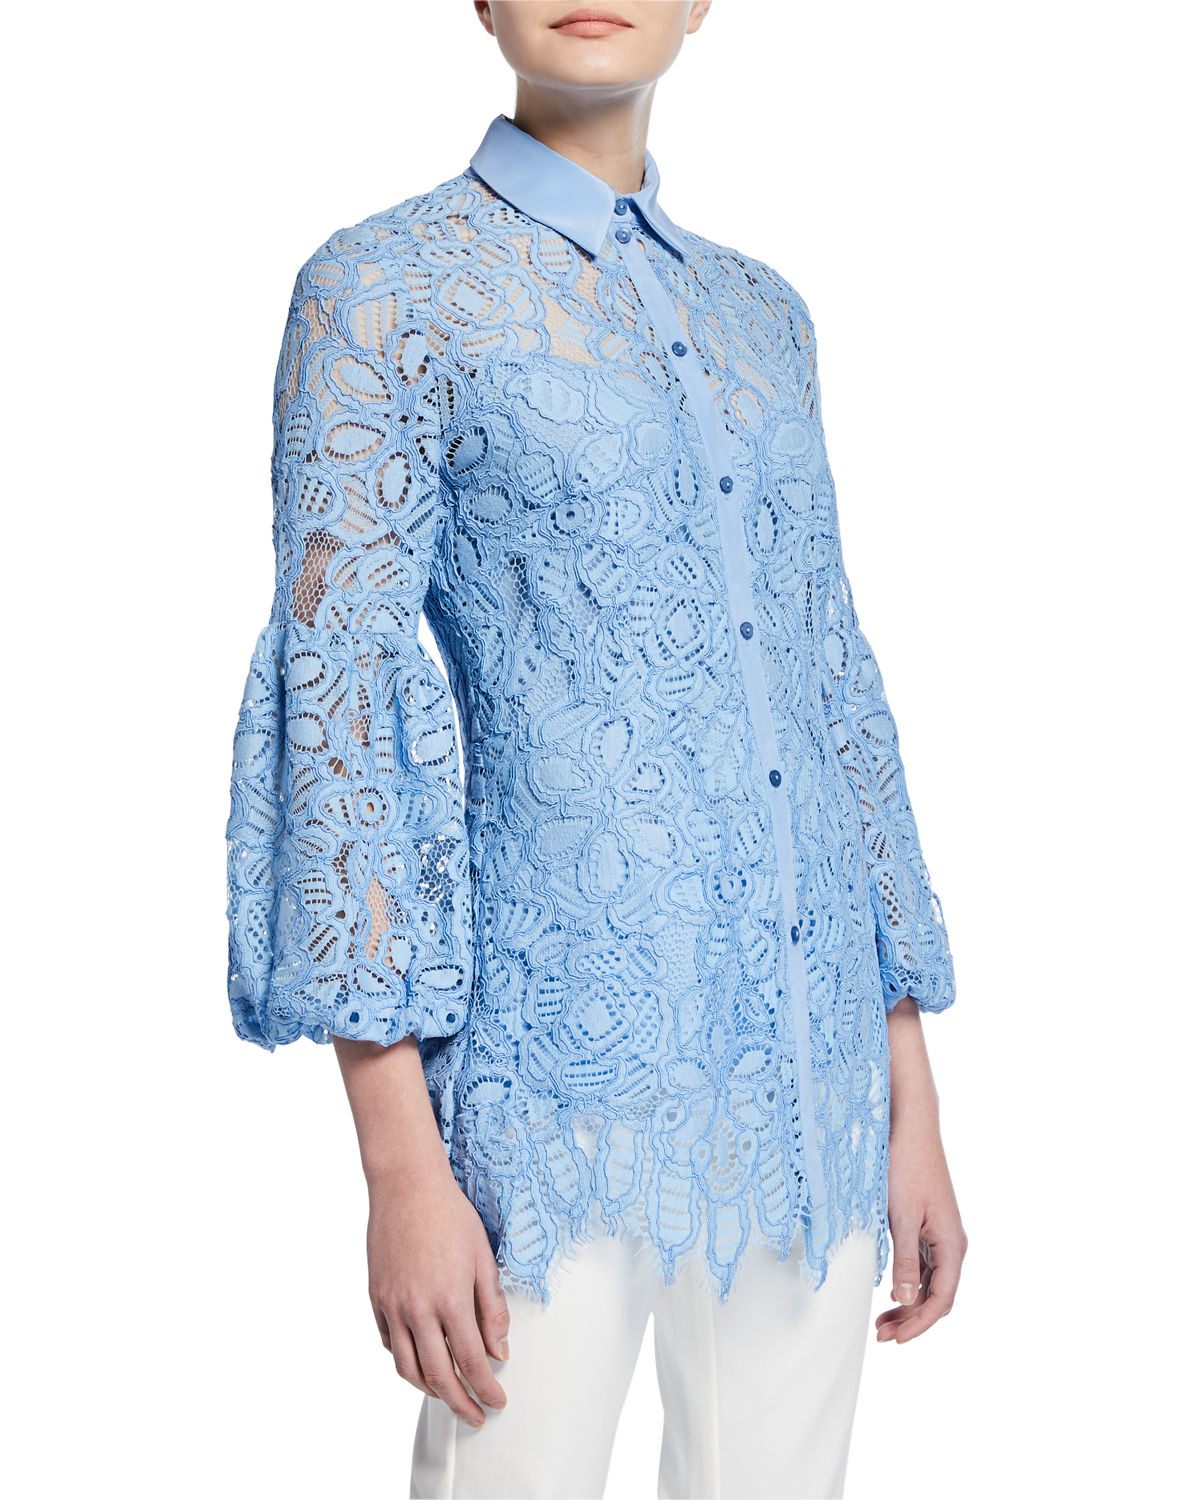 Lela Rose T-shirts FULL-SLEEVE LACE SHIRT